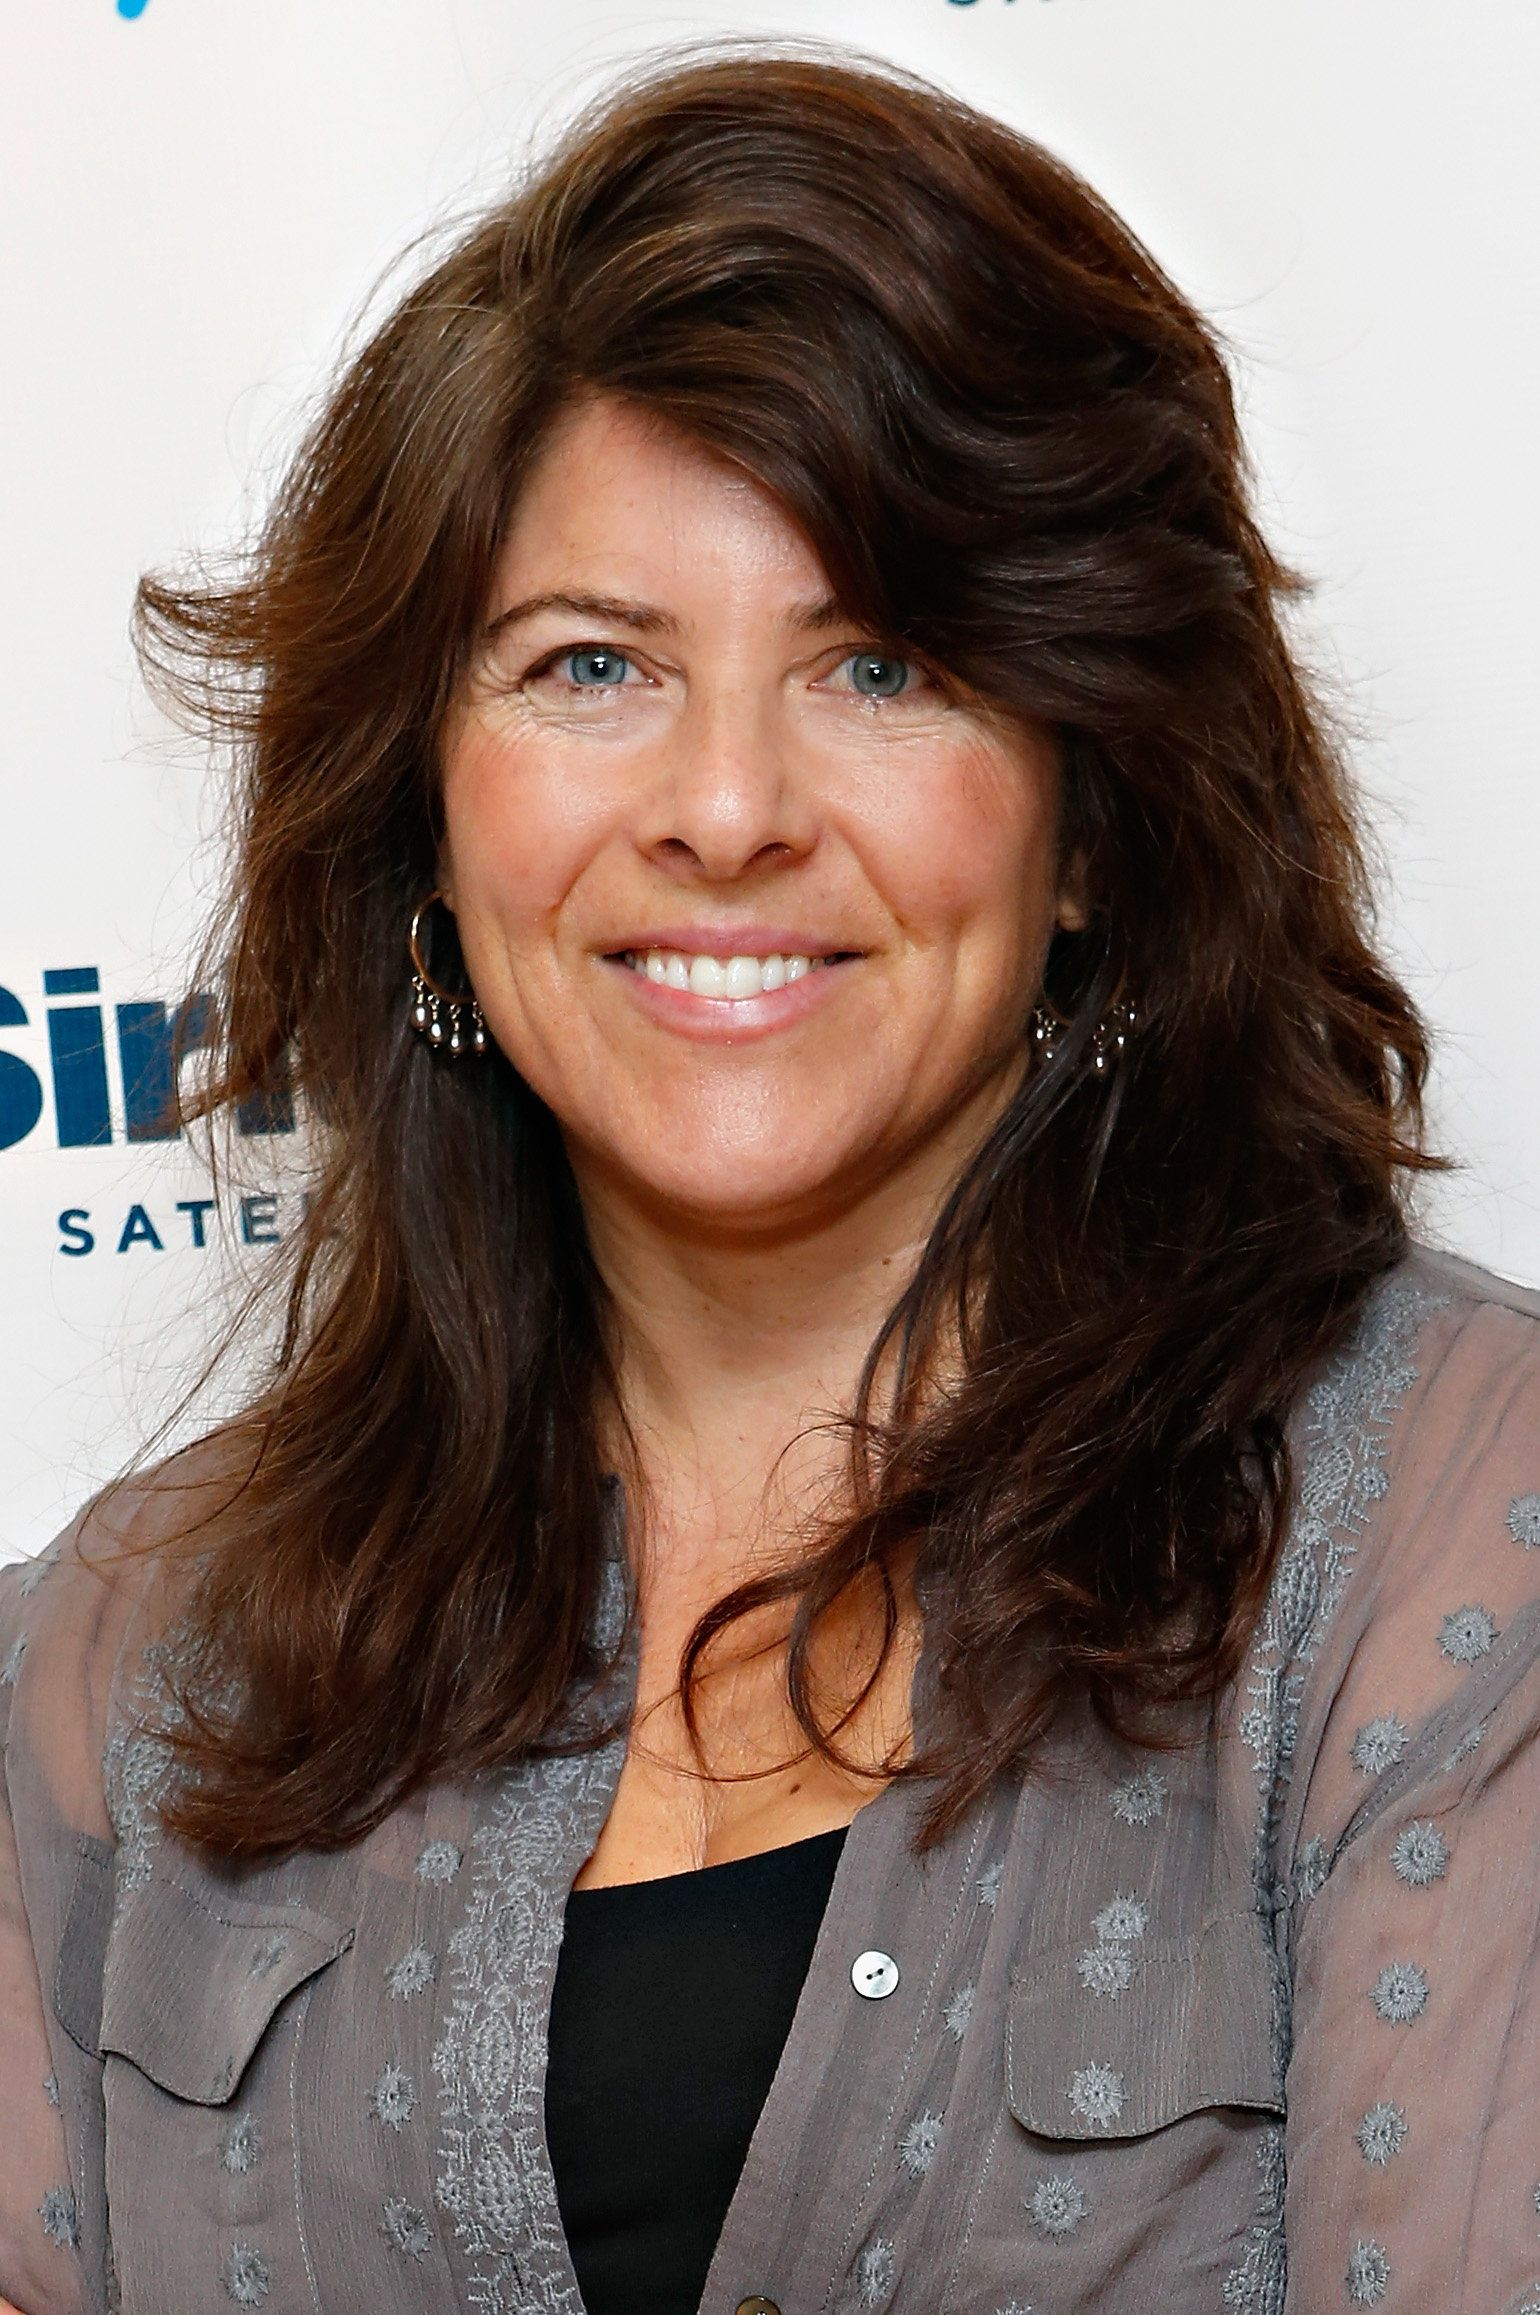 Author Naomi Wolf has revealed she was raped as a